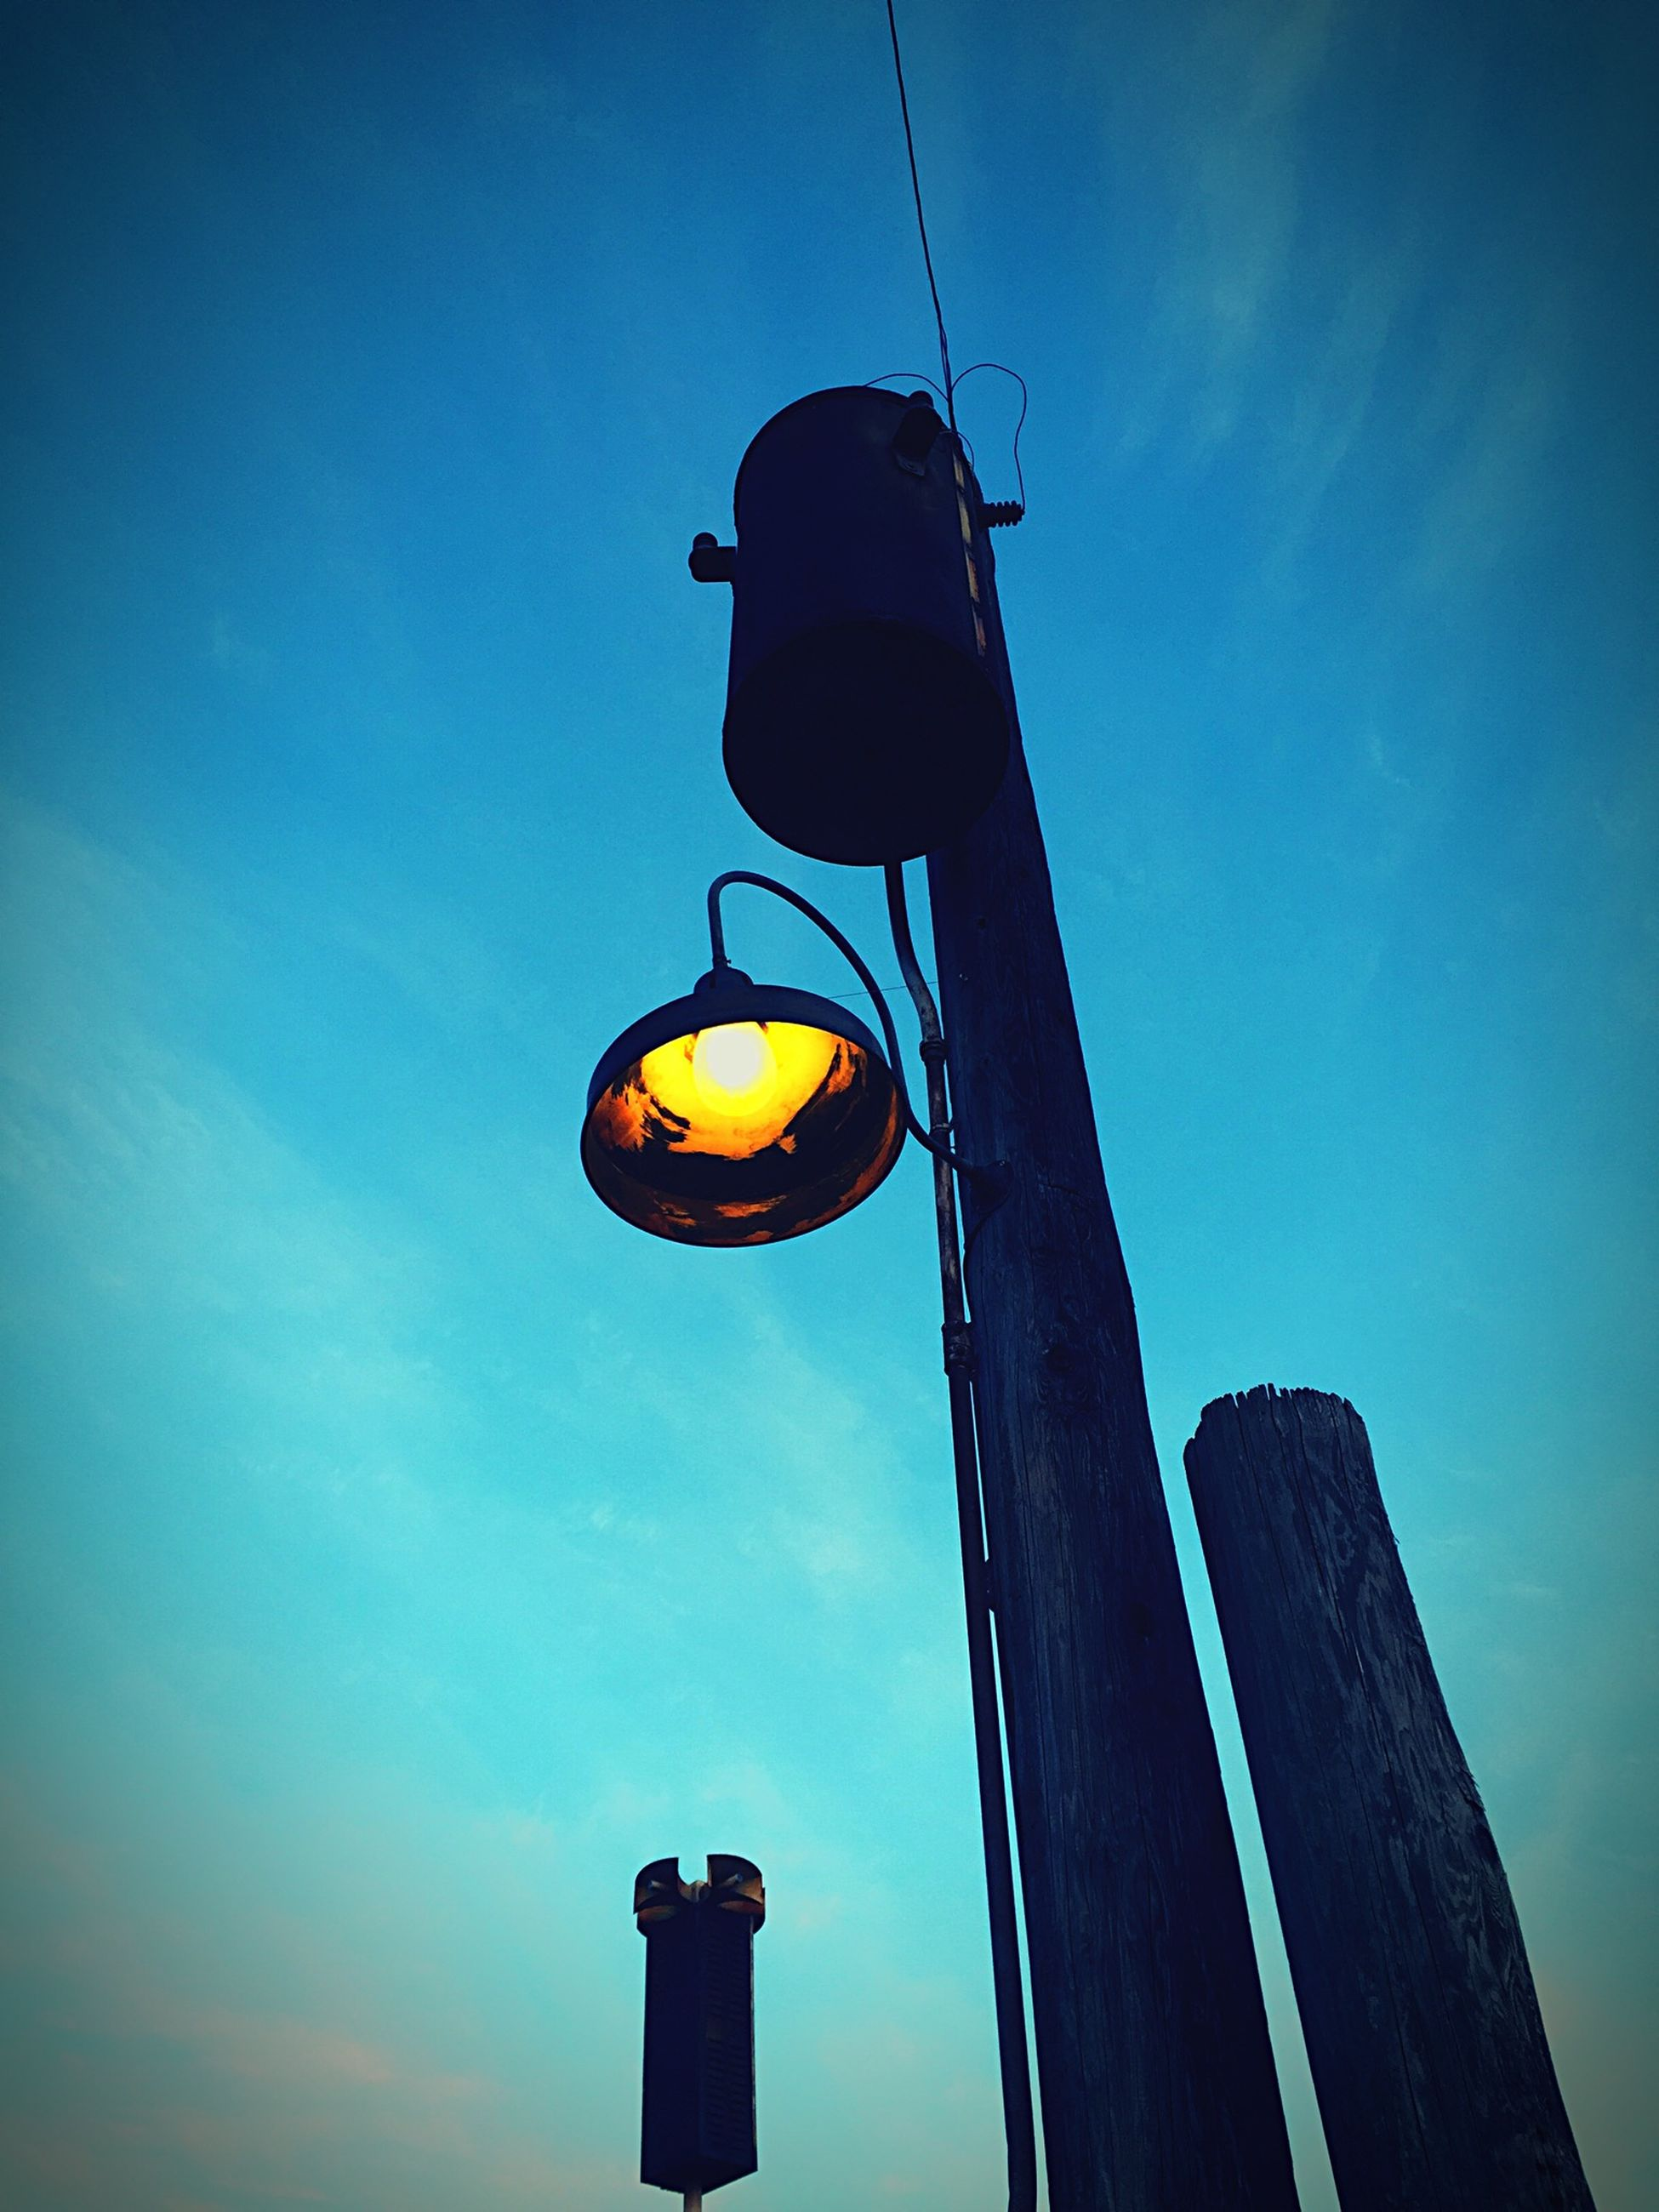 low angle view, lighting equipment, clear sky, sky, street light, blue, built structure, architecture, sunset, electricity, copy space, electric light, building exterior, illuminated, no people, outdoors, dusk, lantern, hanging, pole